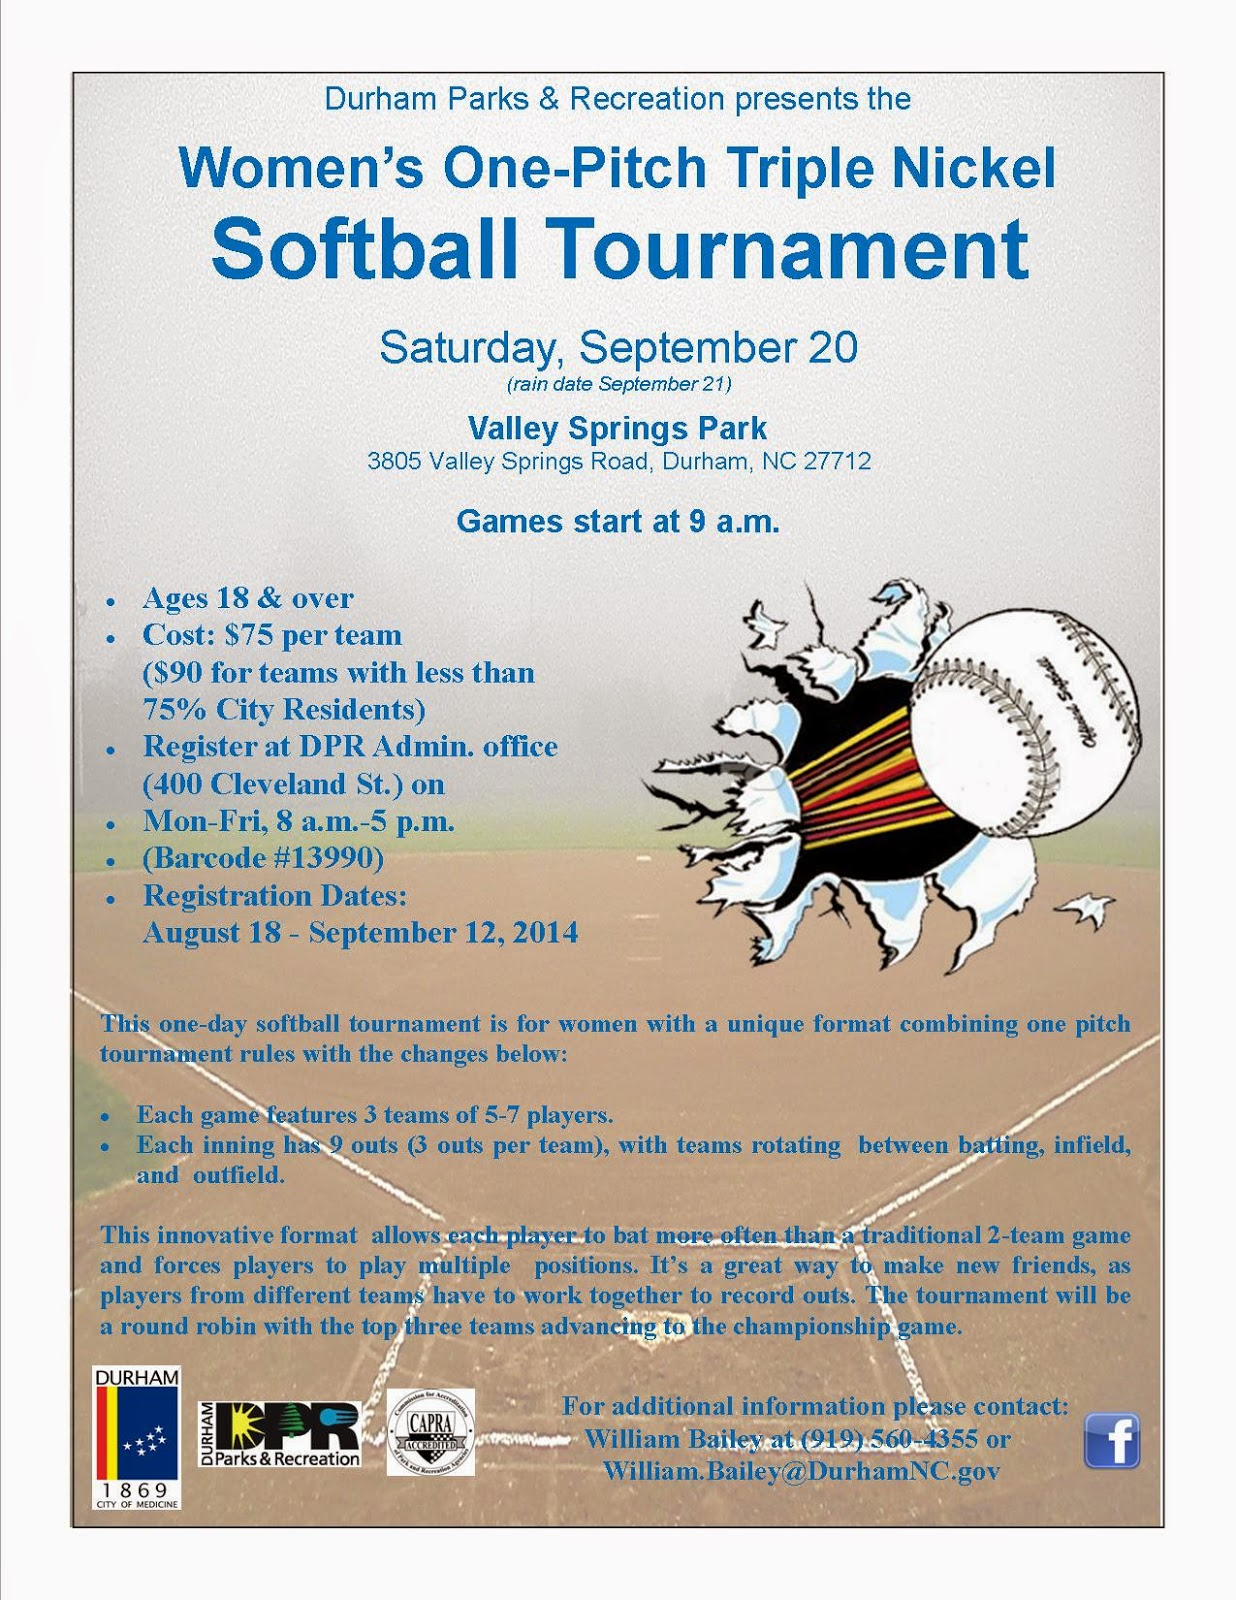 get active women s softball tour nt durham parks and recreation is offering a fun and social tour nt for local area women interested in playing slow pitch softball this fall